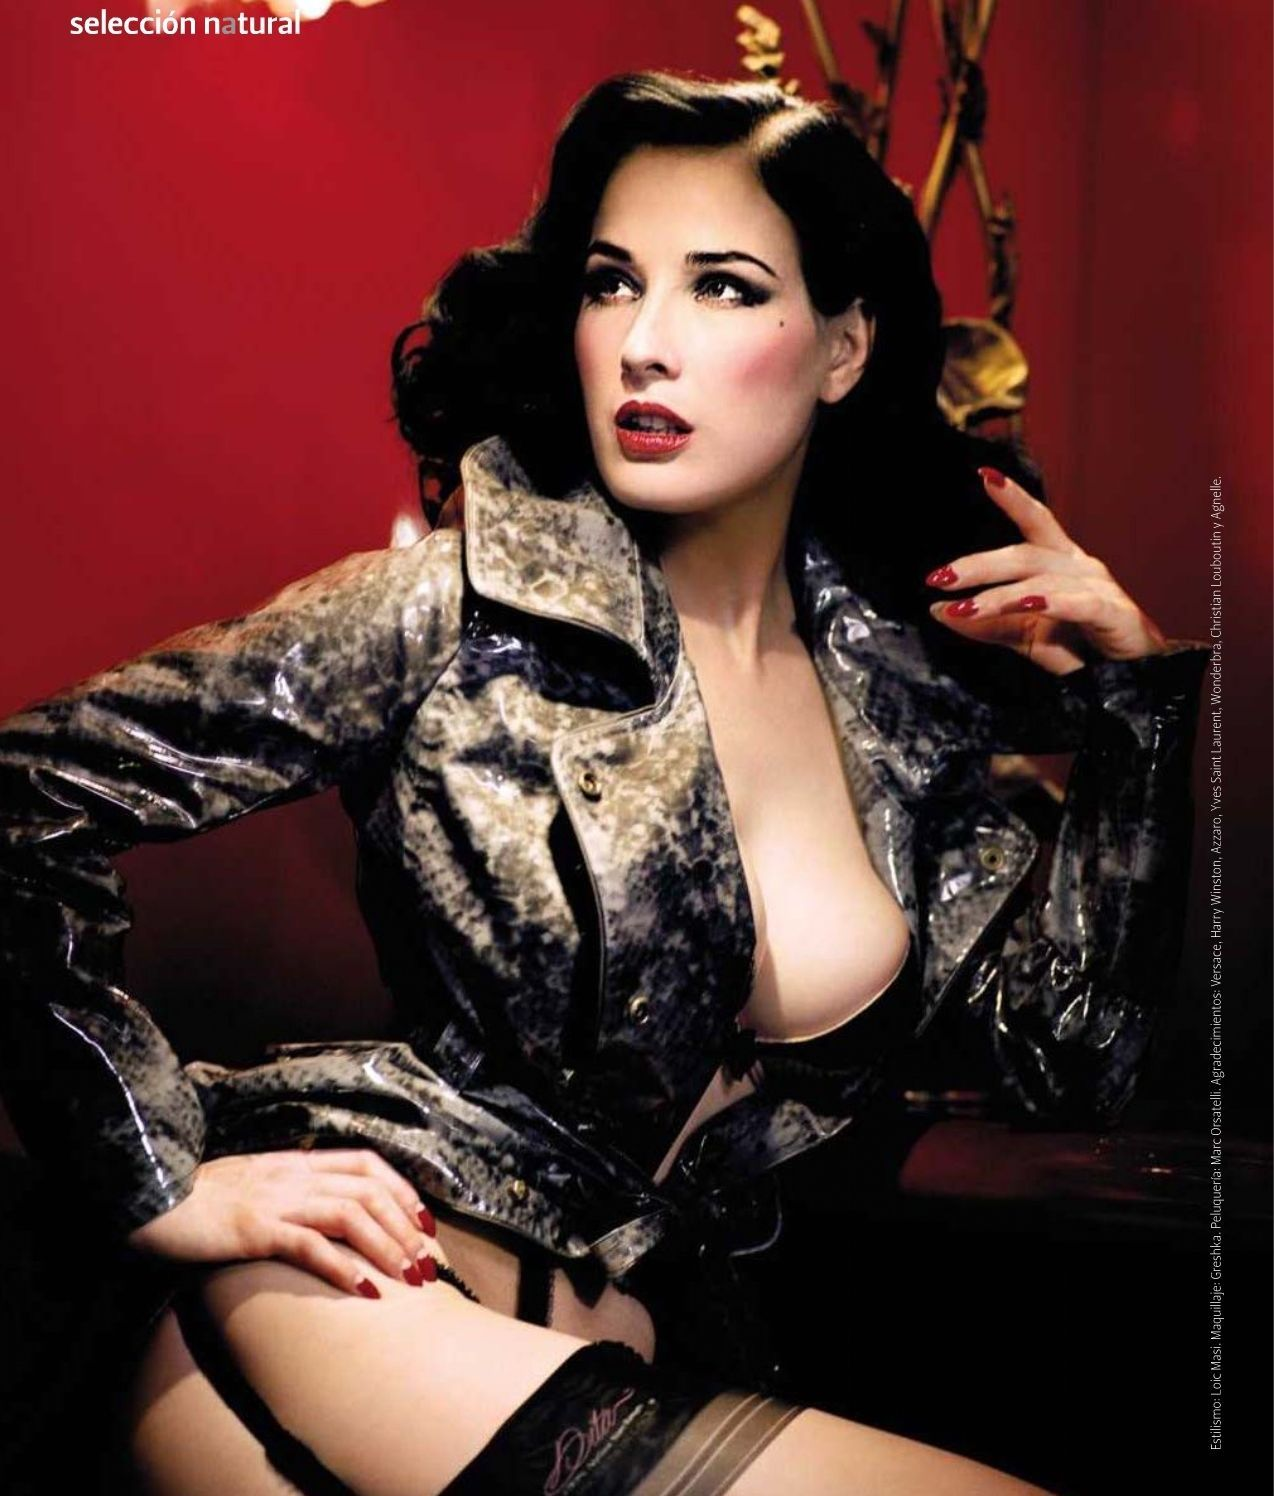 Dita Von Teese Hot Chick Of The Day Pictures Dita Von Teese